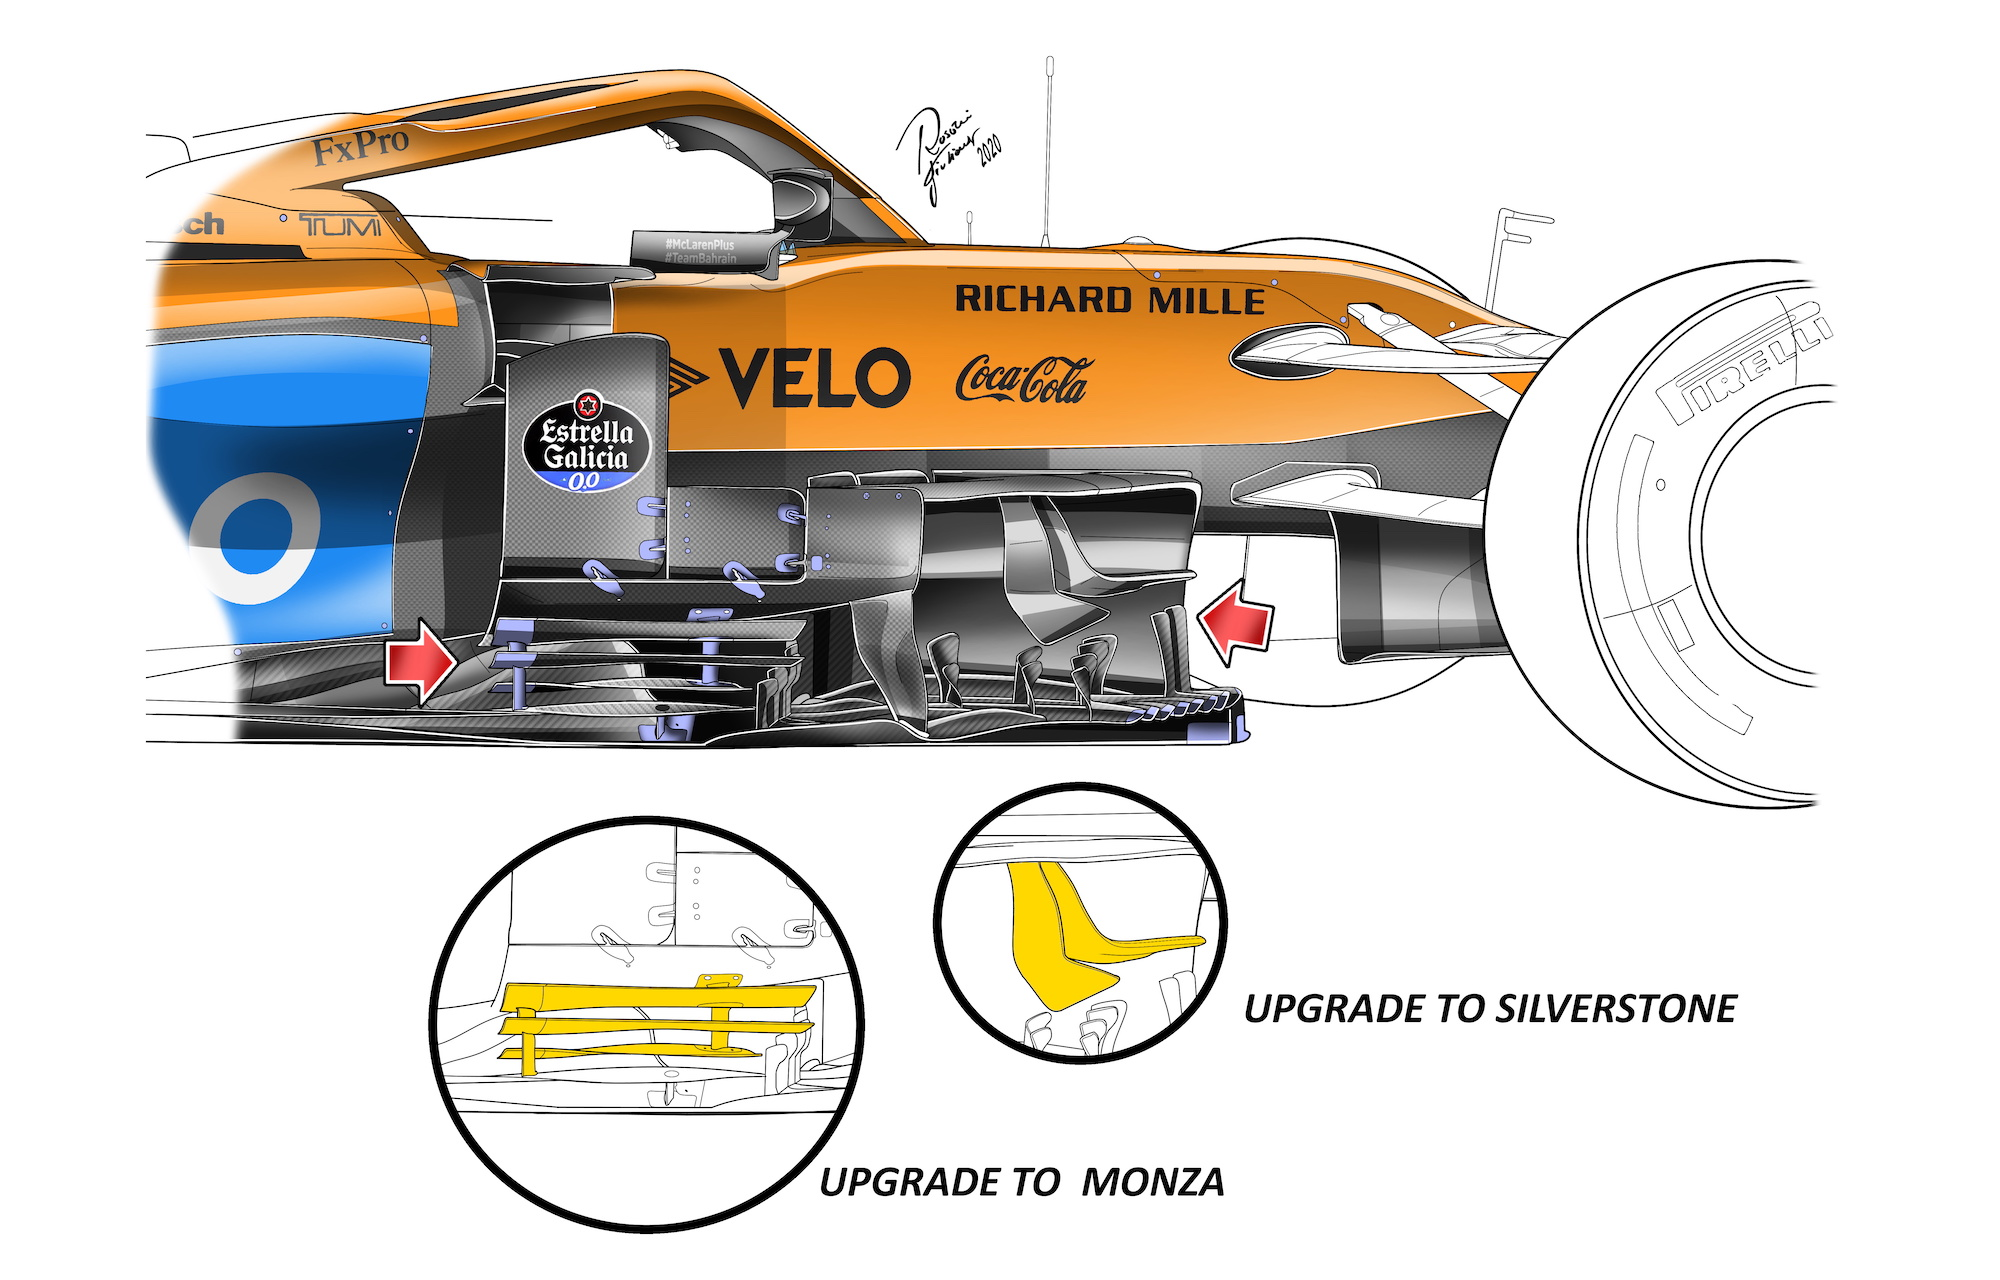 barge-board-mclaren-arrow-jpeg.jpg